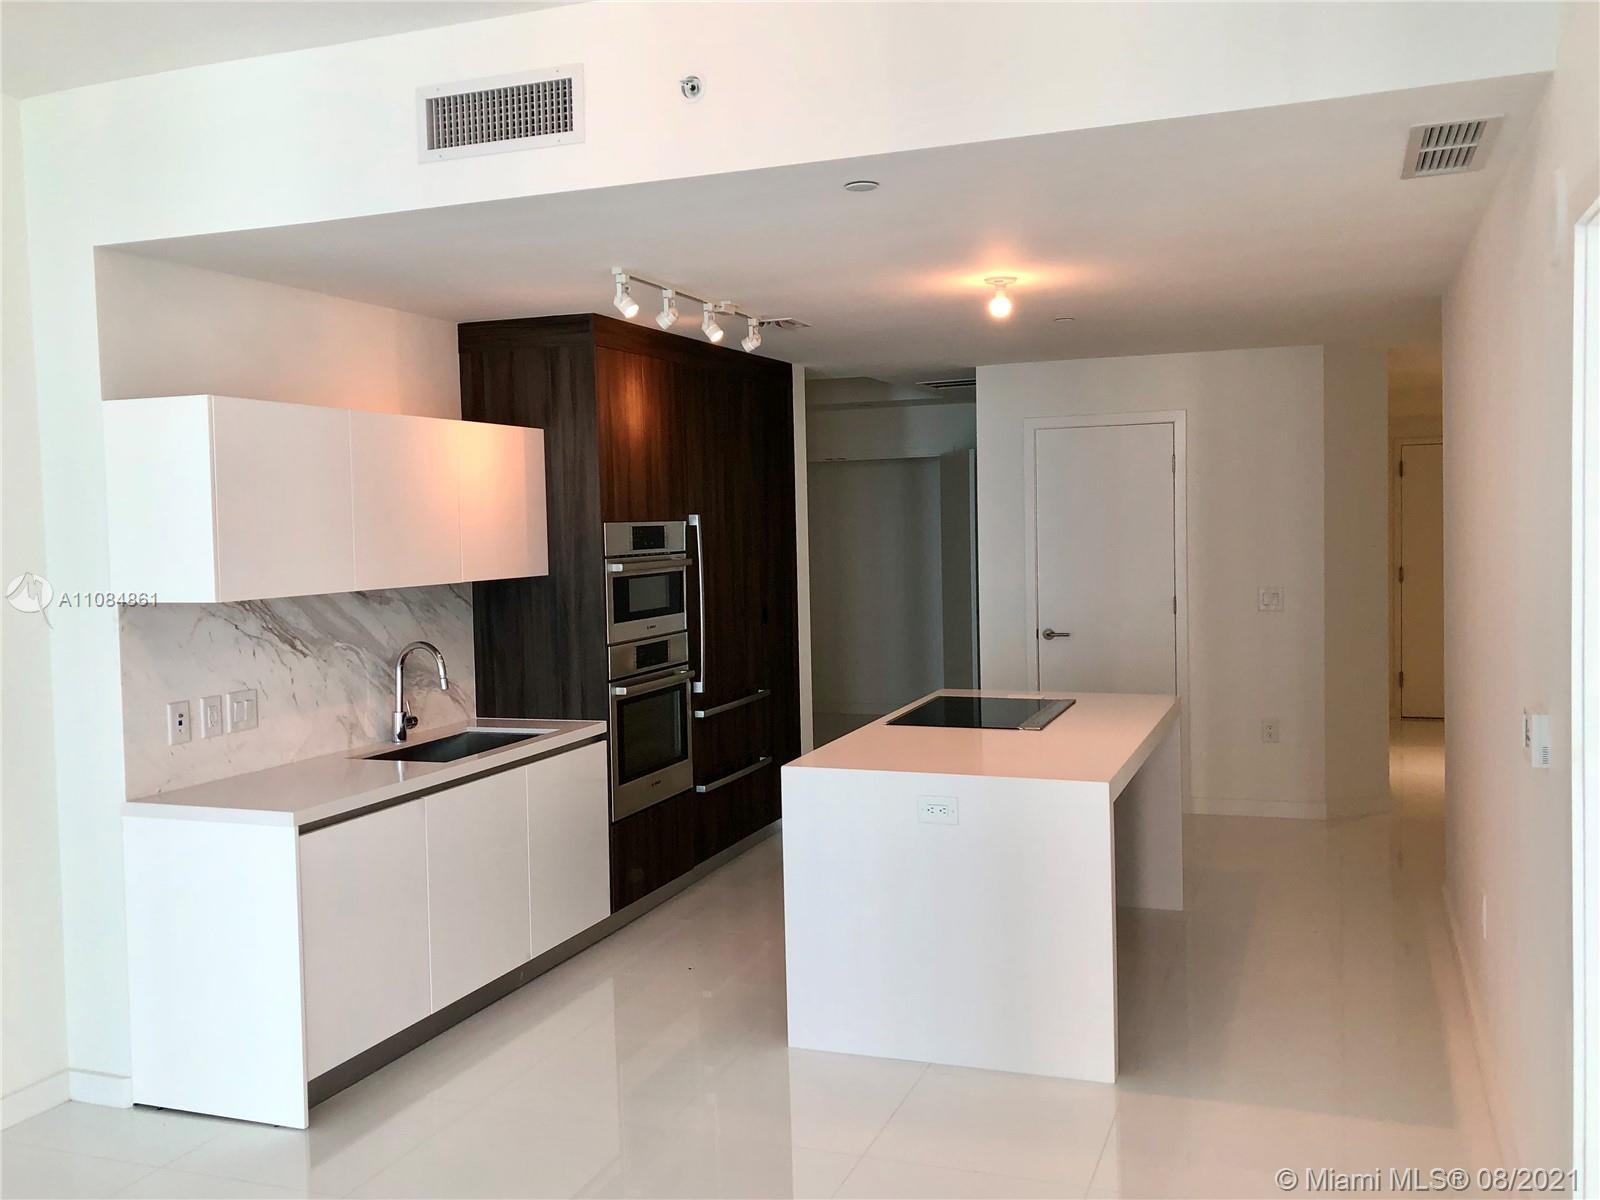 beautiful unit located in the downton of miami in front of arena has two bathrooms and a master bedr